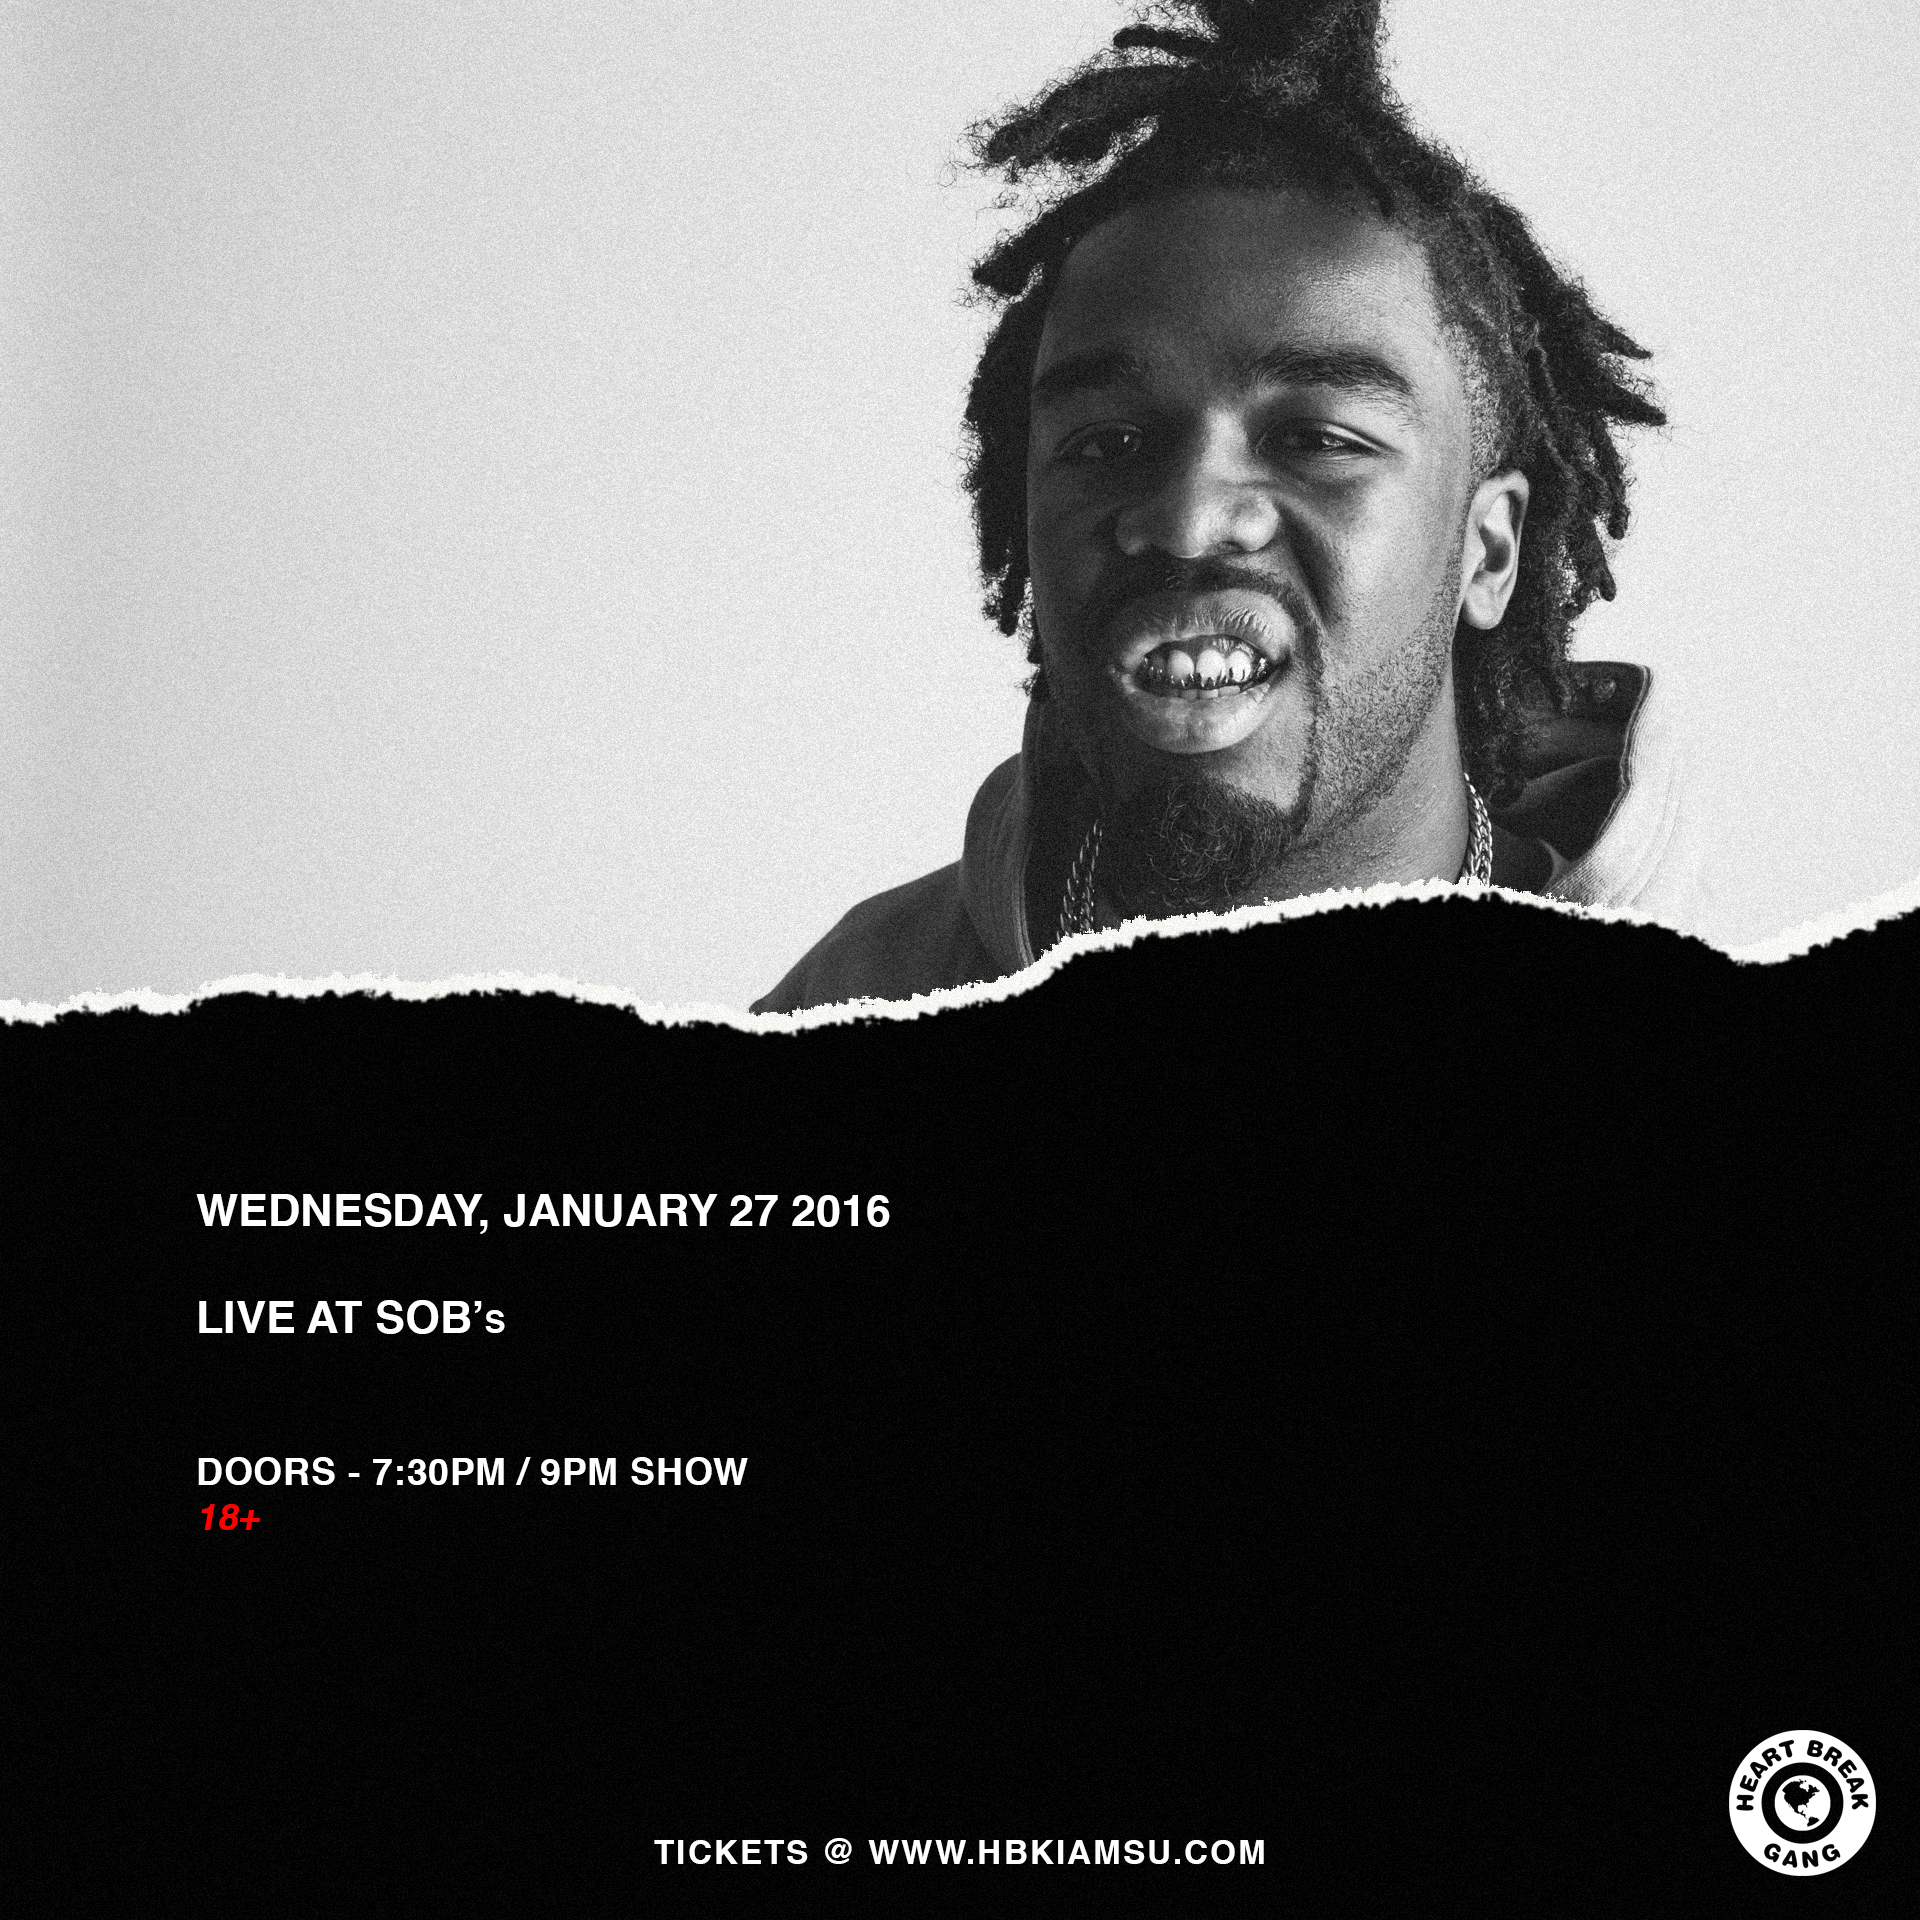 IAMSU! LIVE IN NEW YORK AT SOB'S JAN 27TH. GET TICKETS NOW!